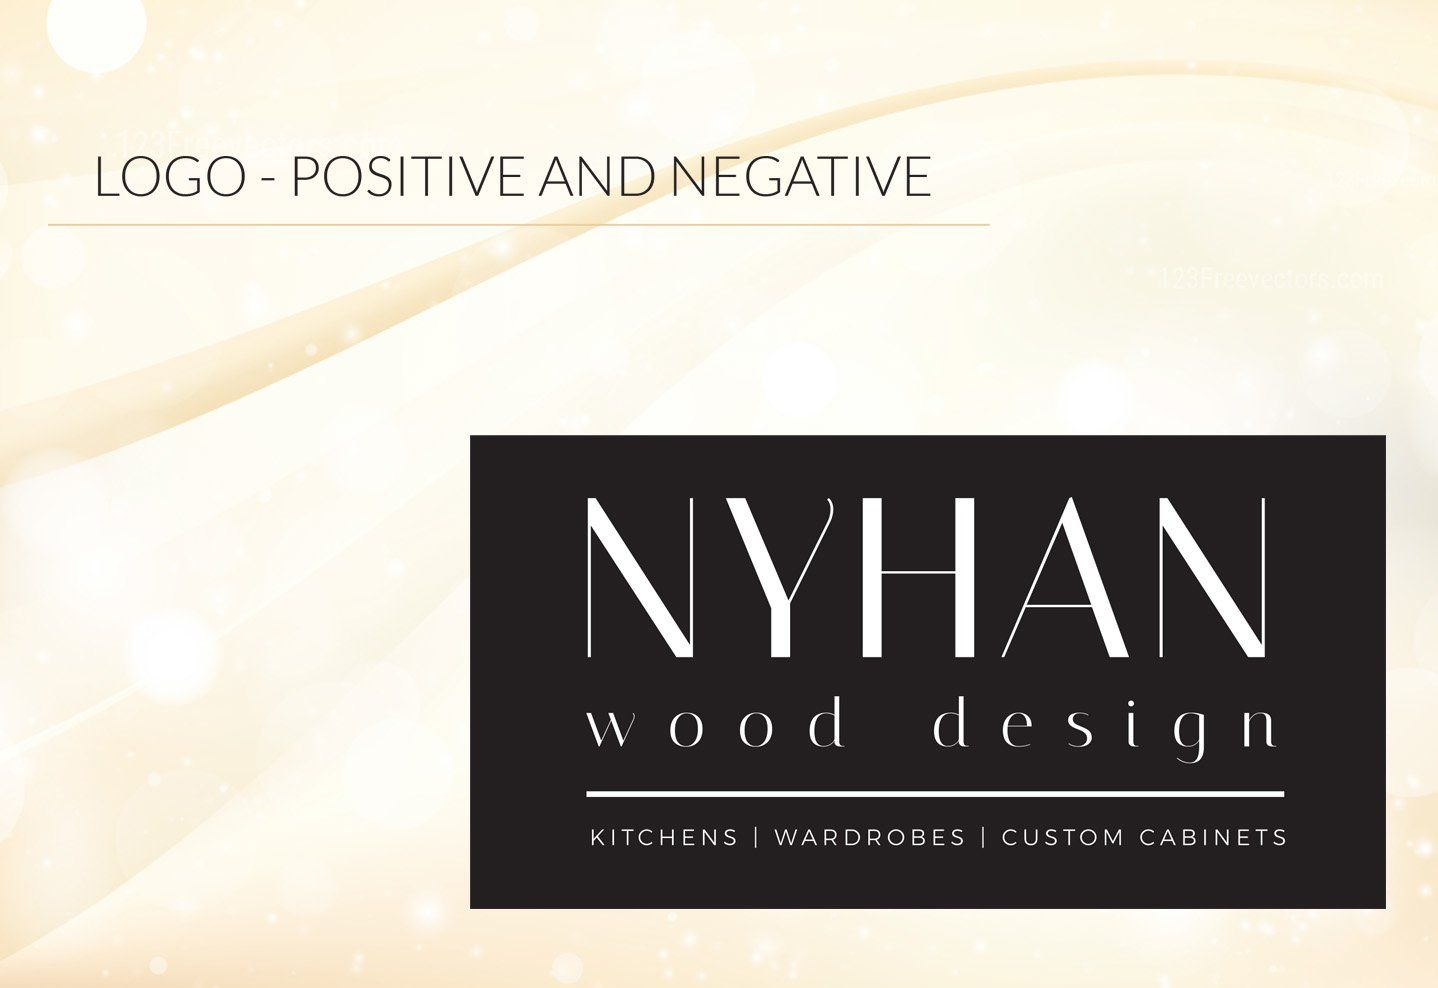 Nyhan Wood Design - Logo Positive and Negative black background